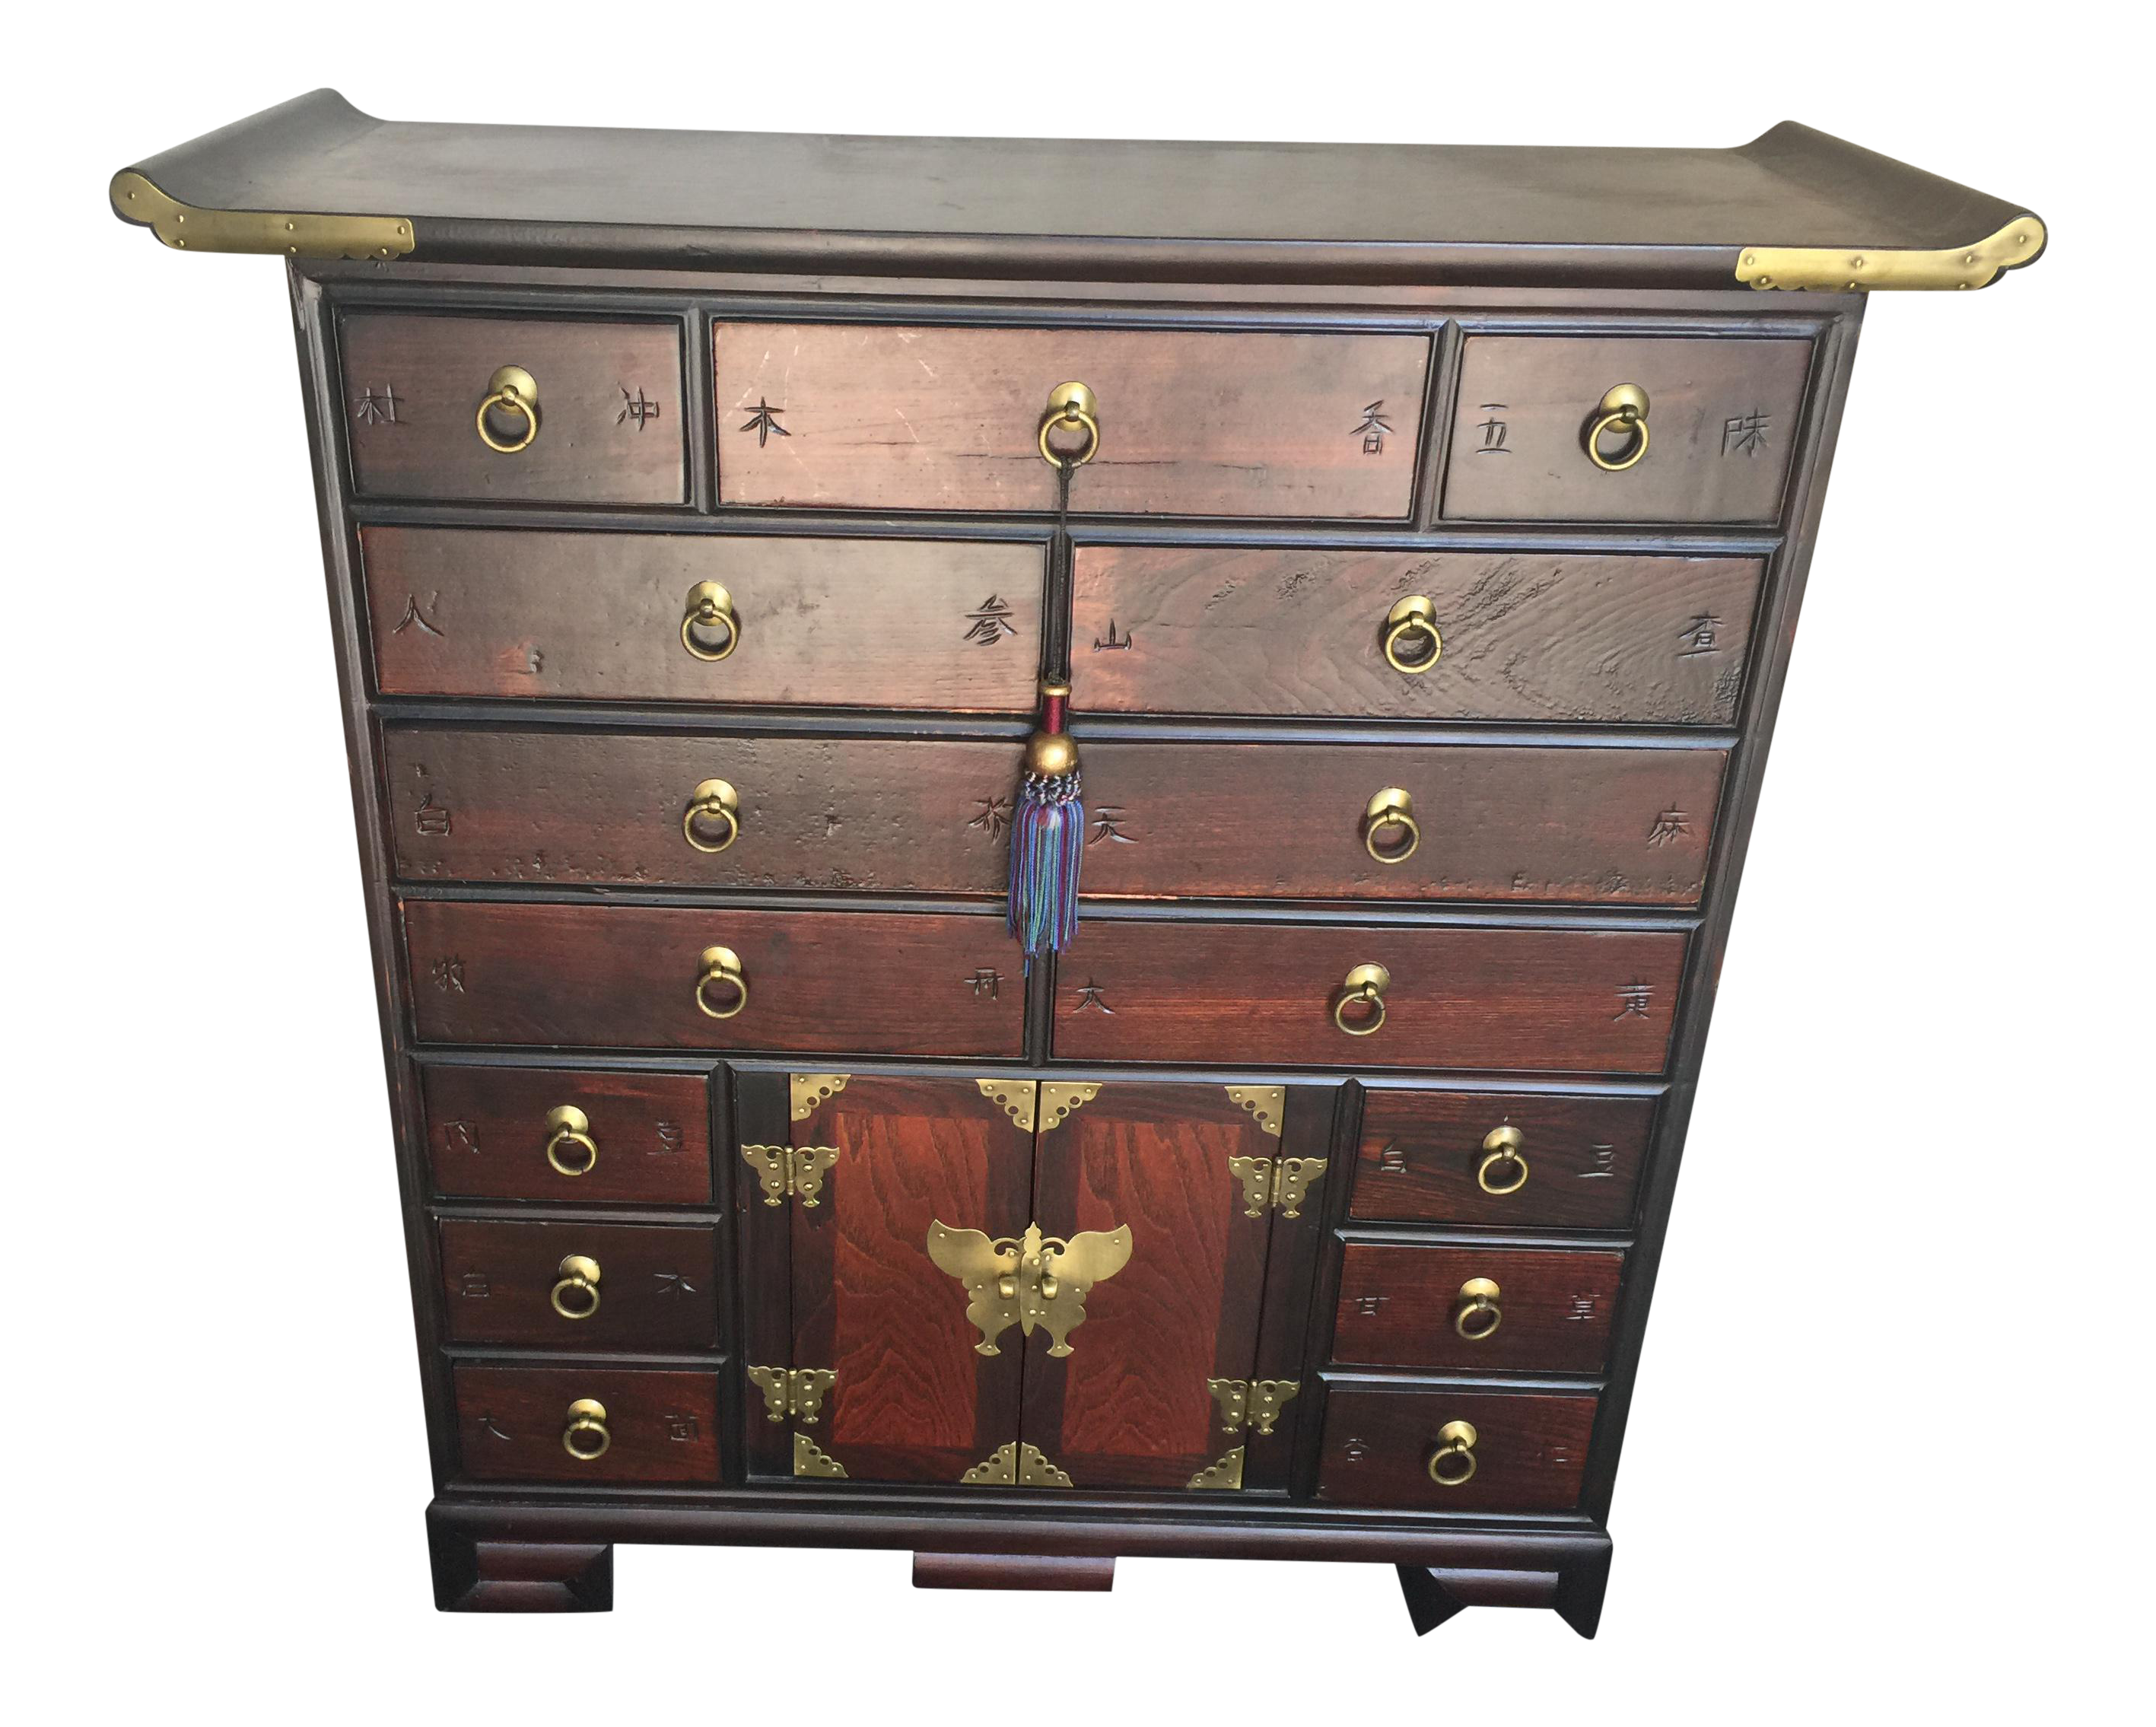 apothecary style furniture. Apothecary Style Furniture T